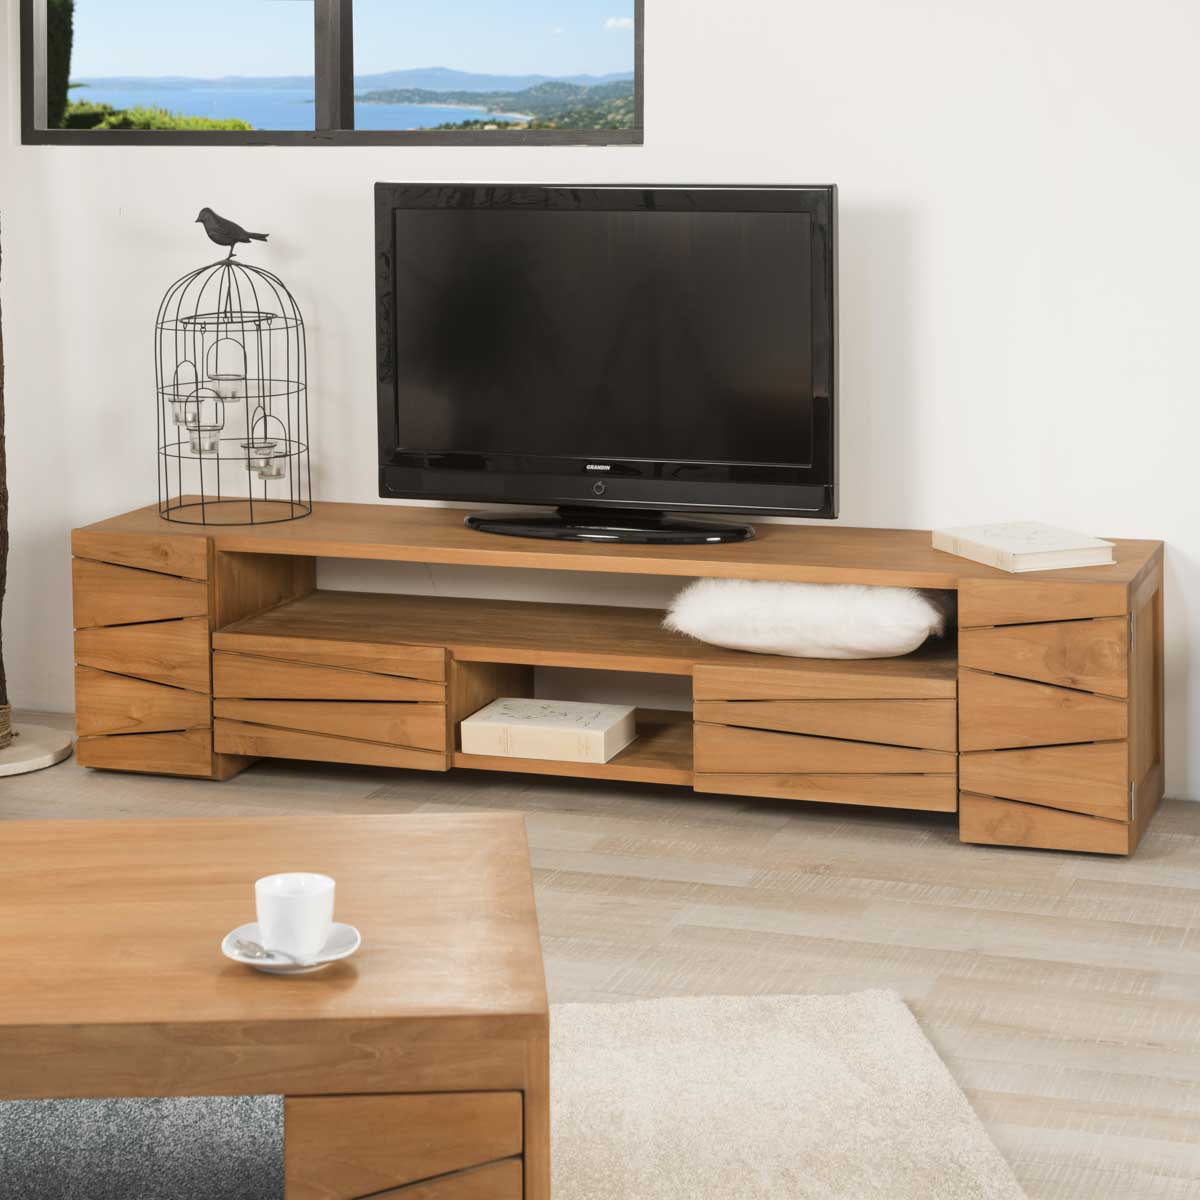 meuble tv teck meuble tv bois naturel rectangle s r nit 170 x 50 cm. Black Bedroom Furniture Sets. Home Design Ideas